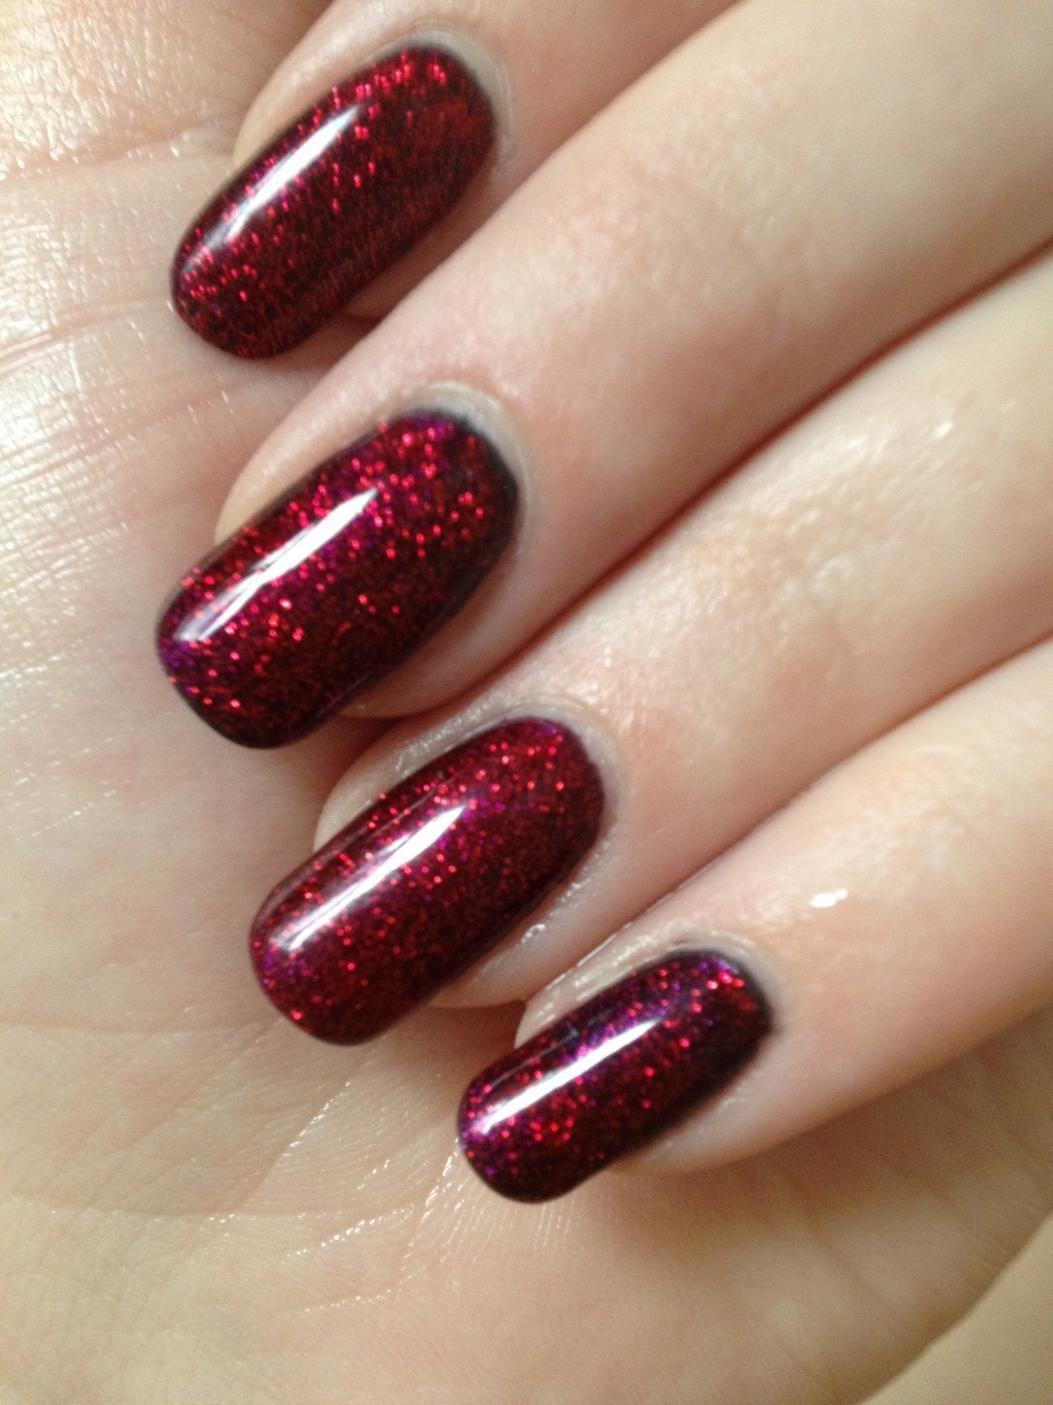 Pin by Sonia Vargas on UÑAS | Pinterest | Shellac nails, Red gel ...